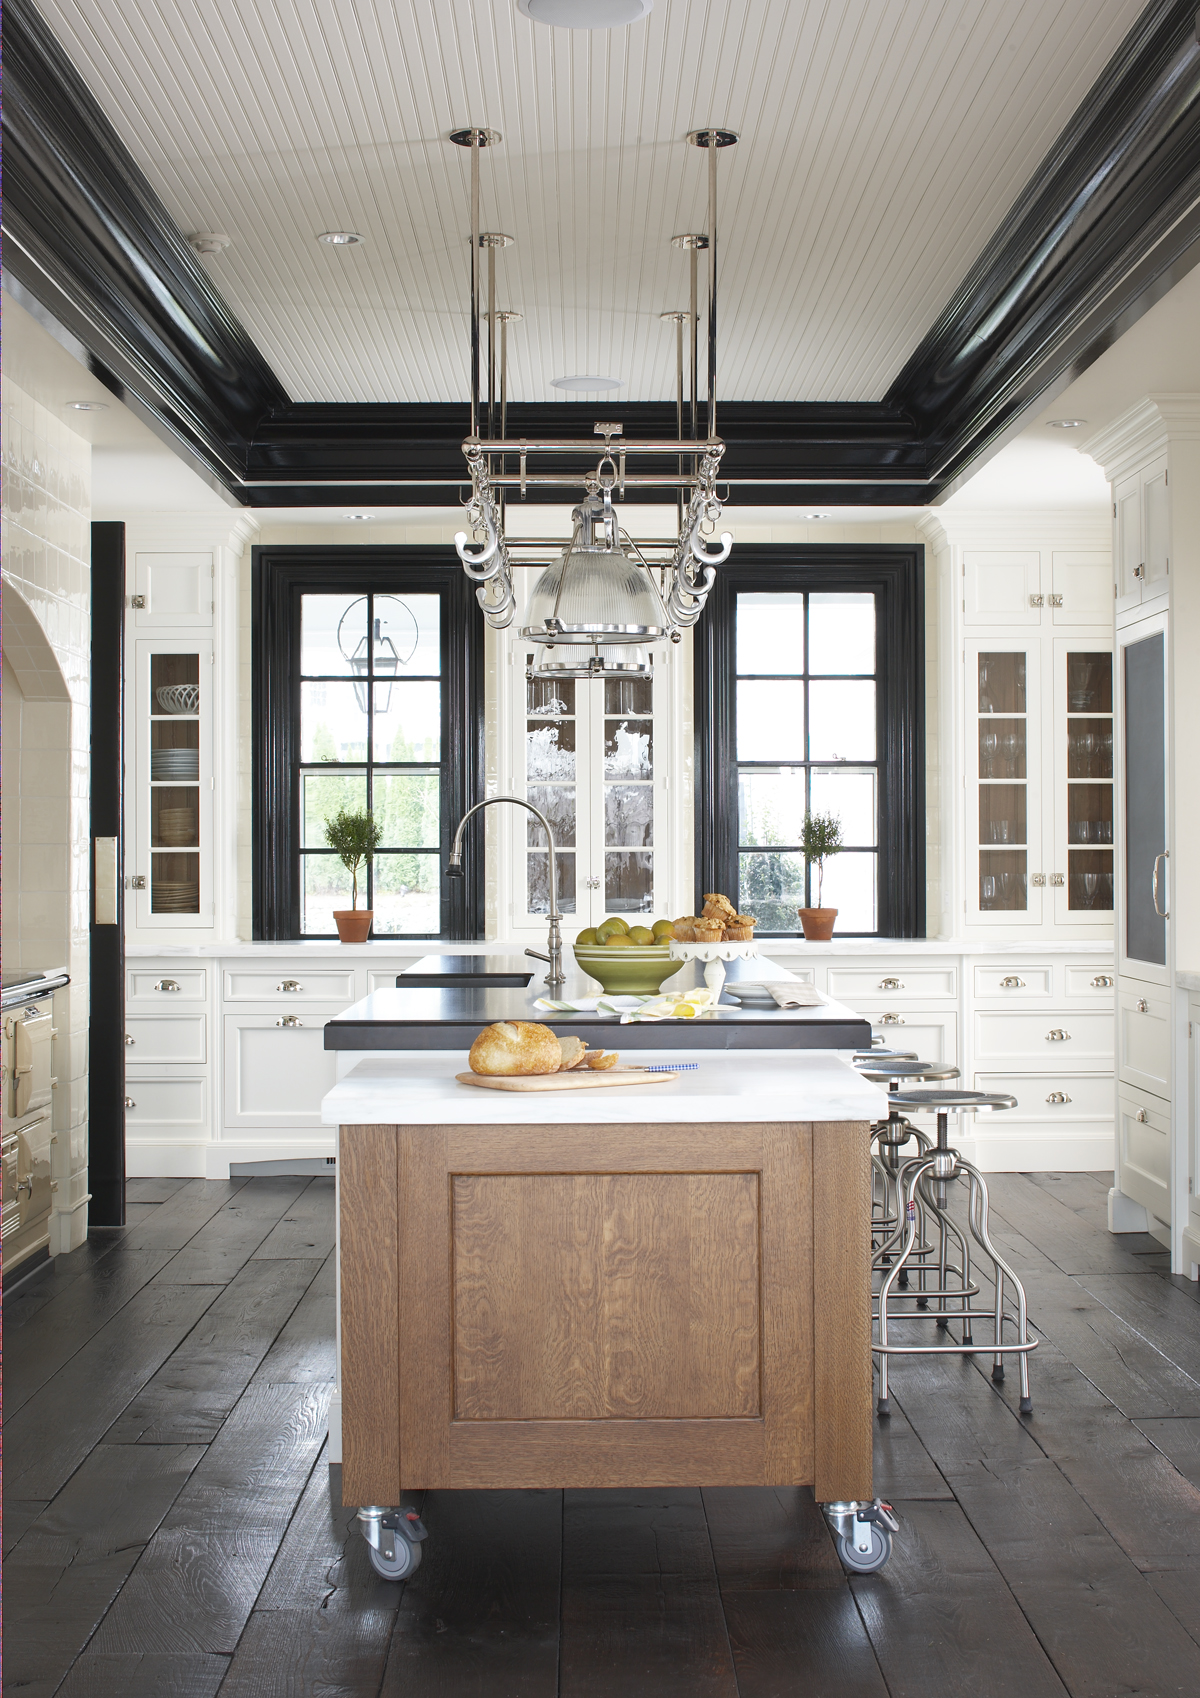 Christopher Peacock Kitchen coldwell banker global luxury blog – luxury home & style